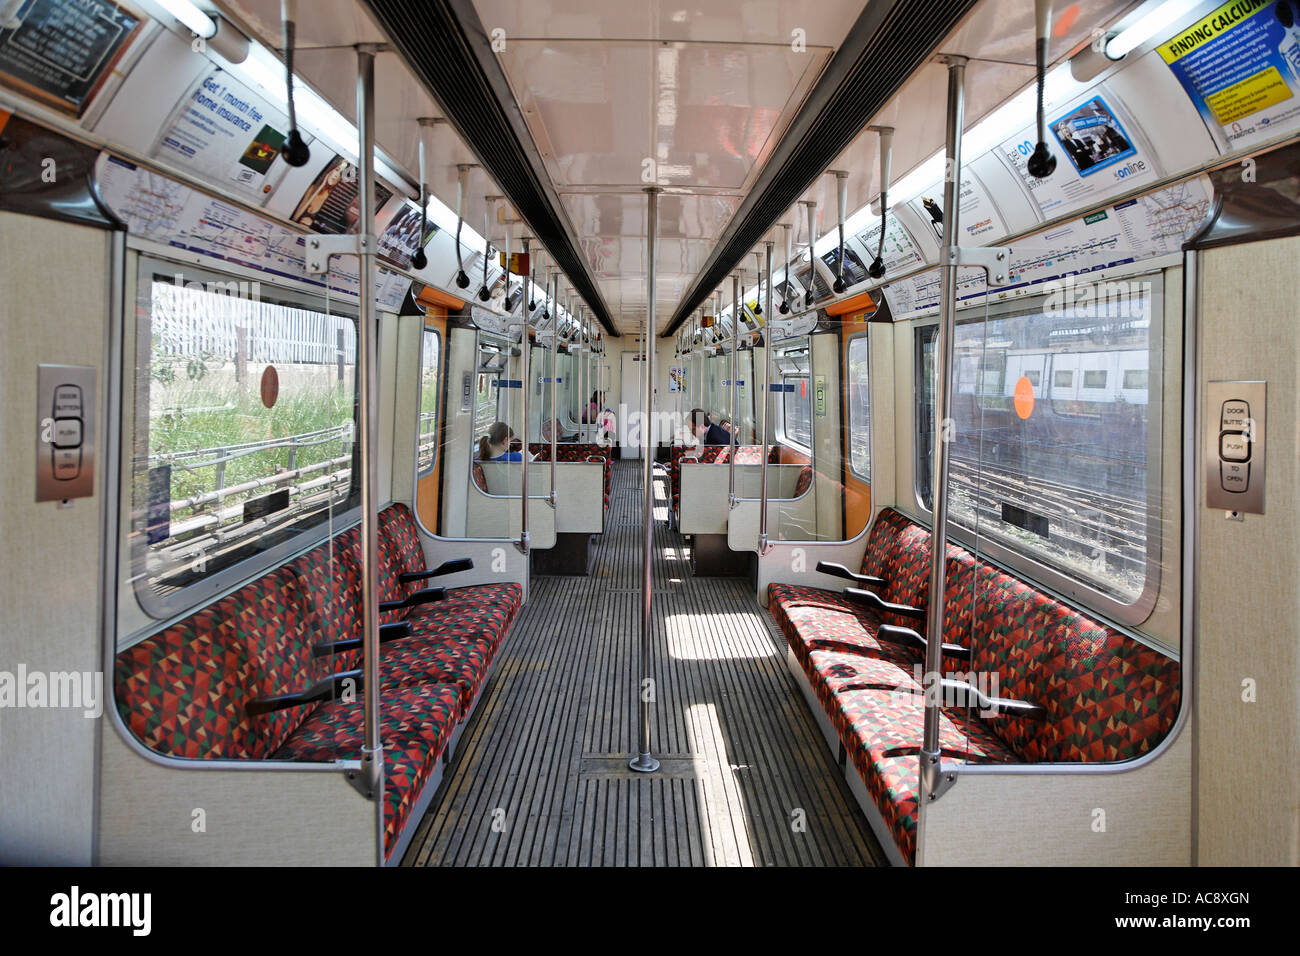 Empty Interior Of A Tube Train London Uk Europe Stock Photo ...